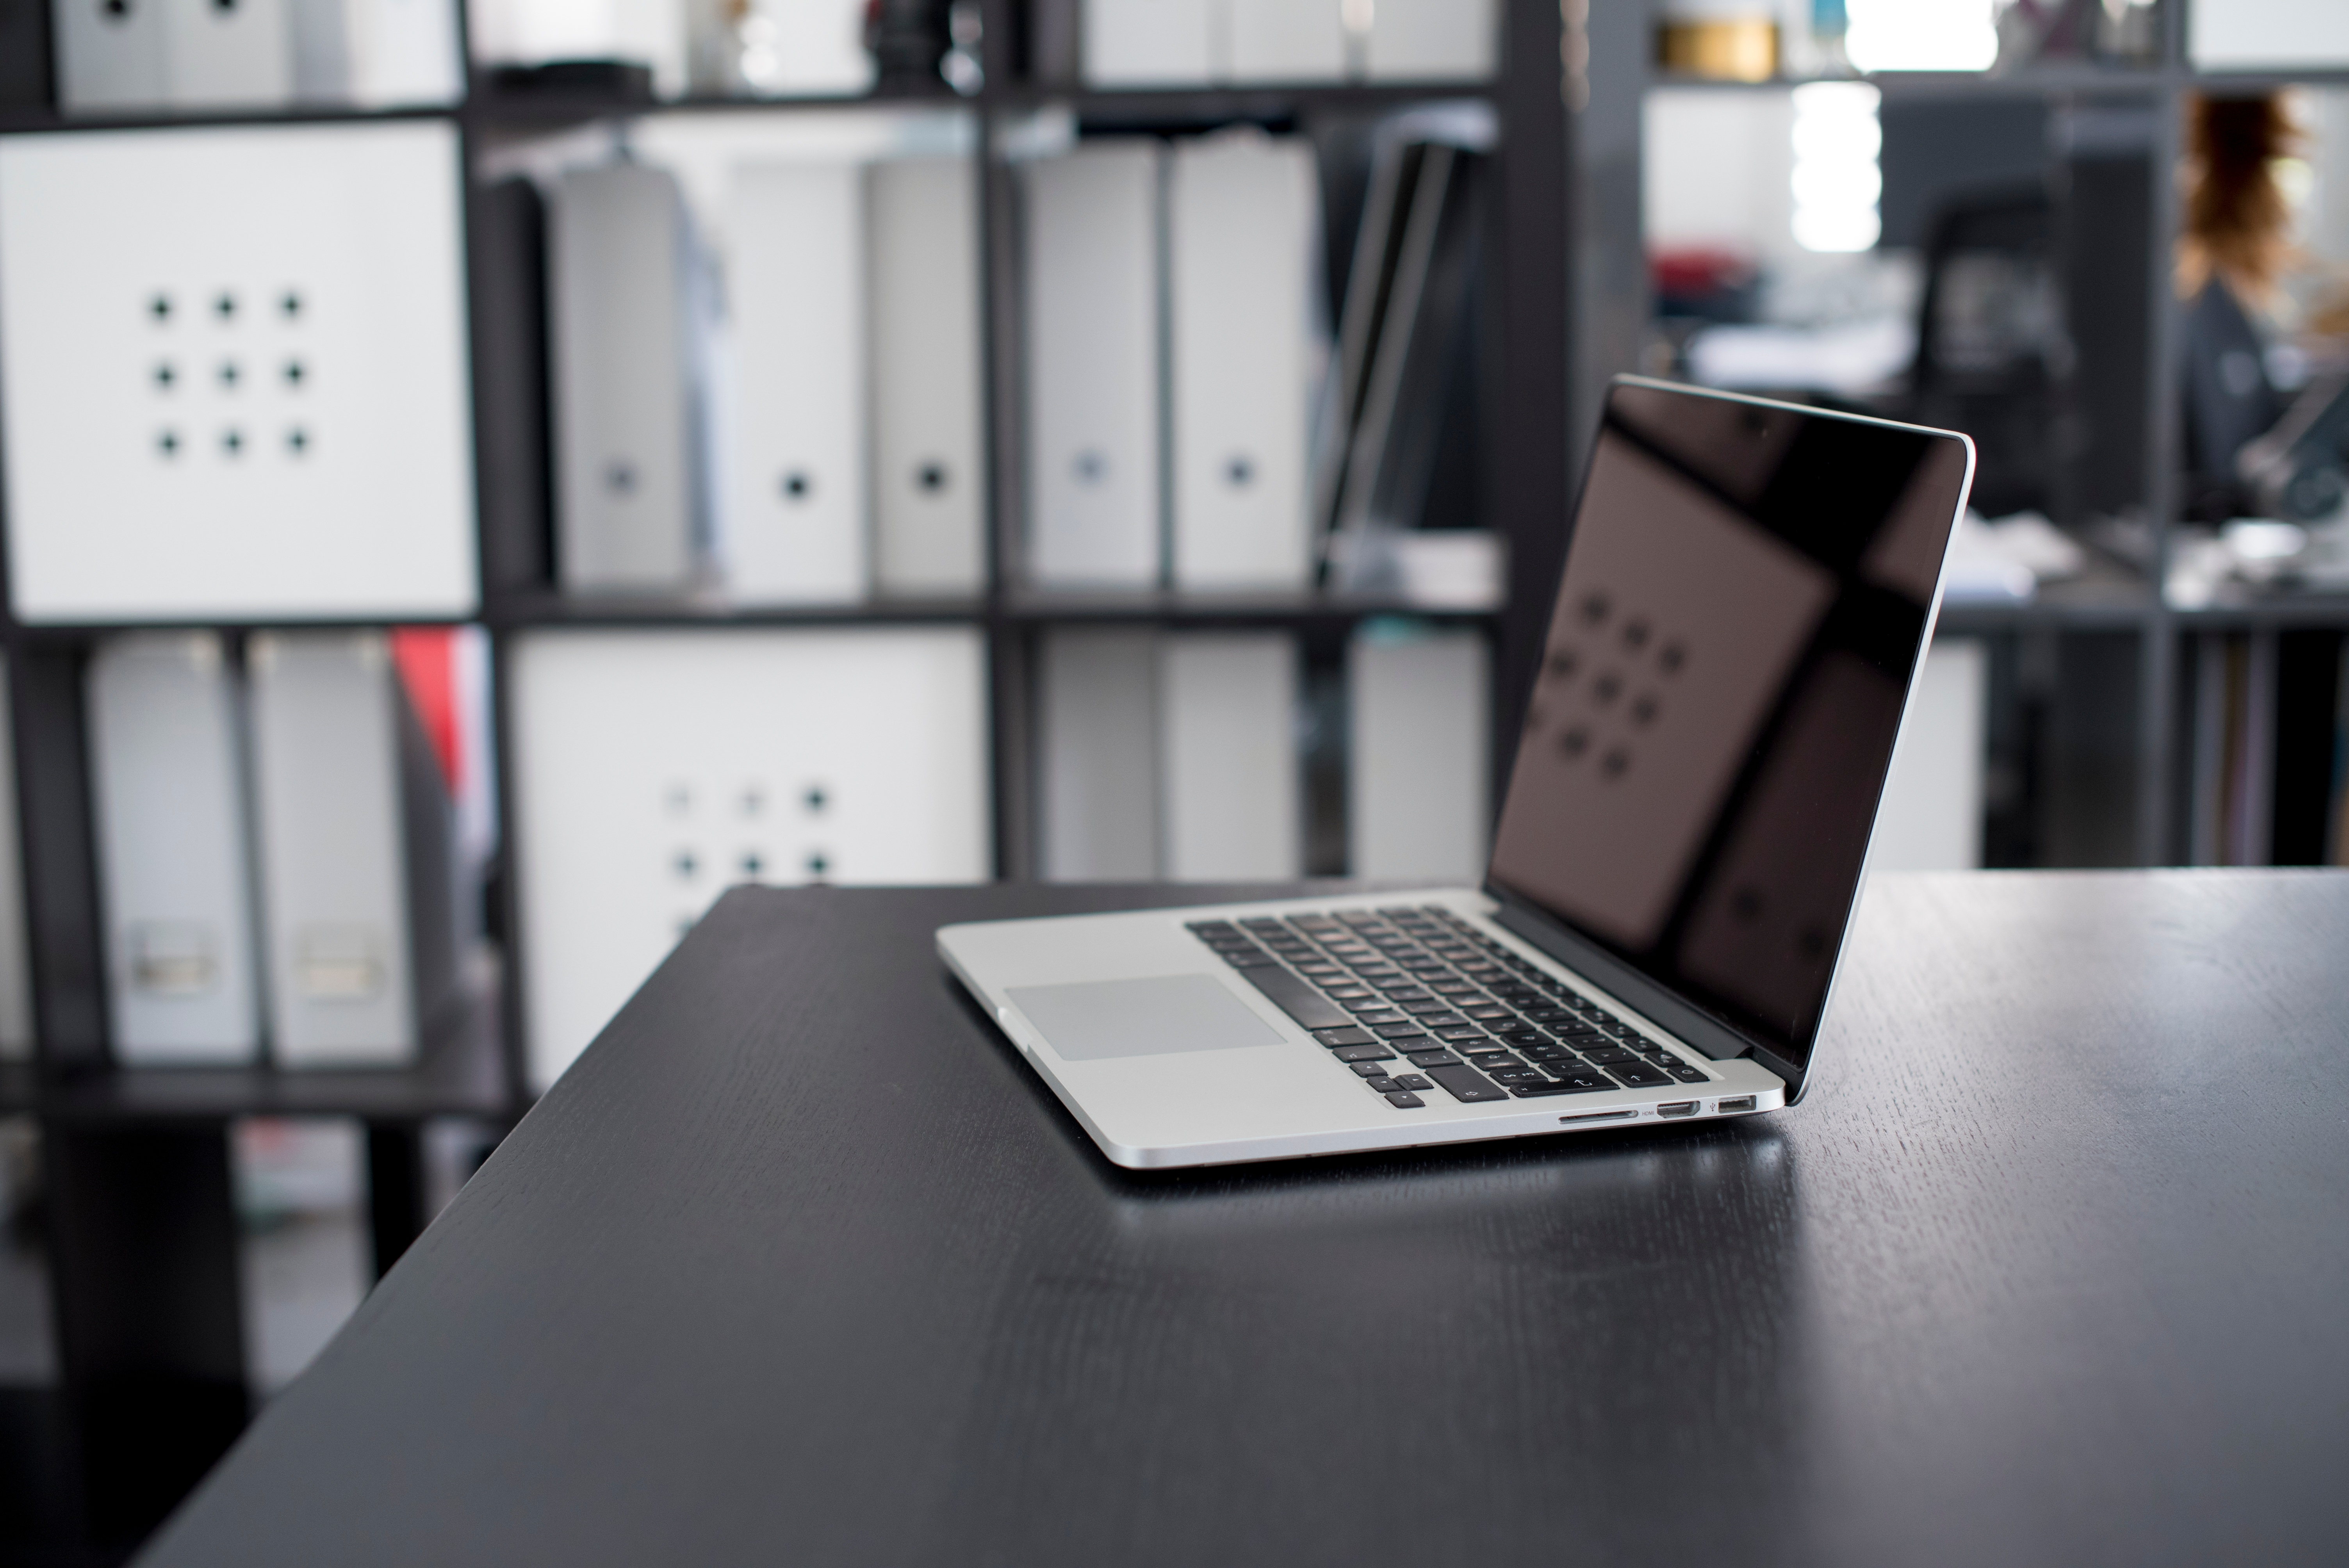 unsecure laptop on desk